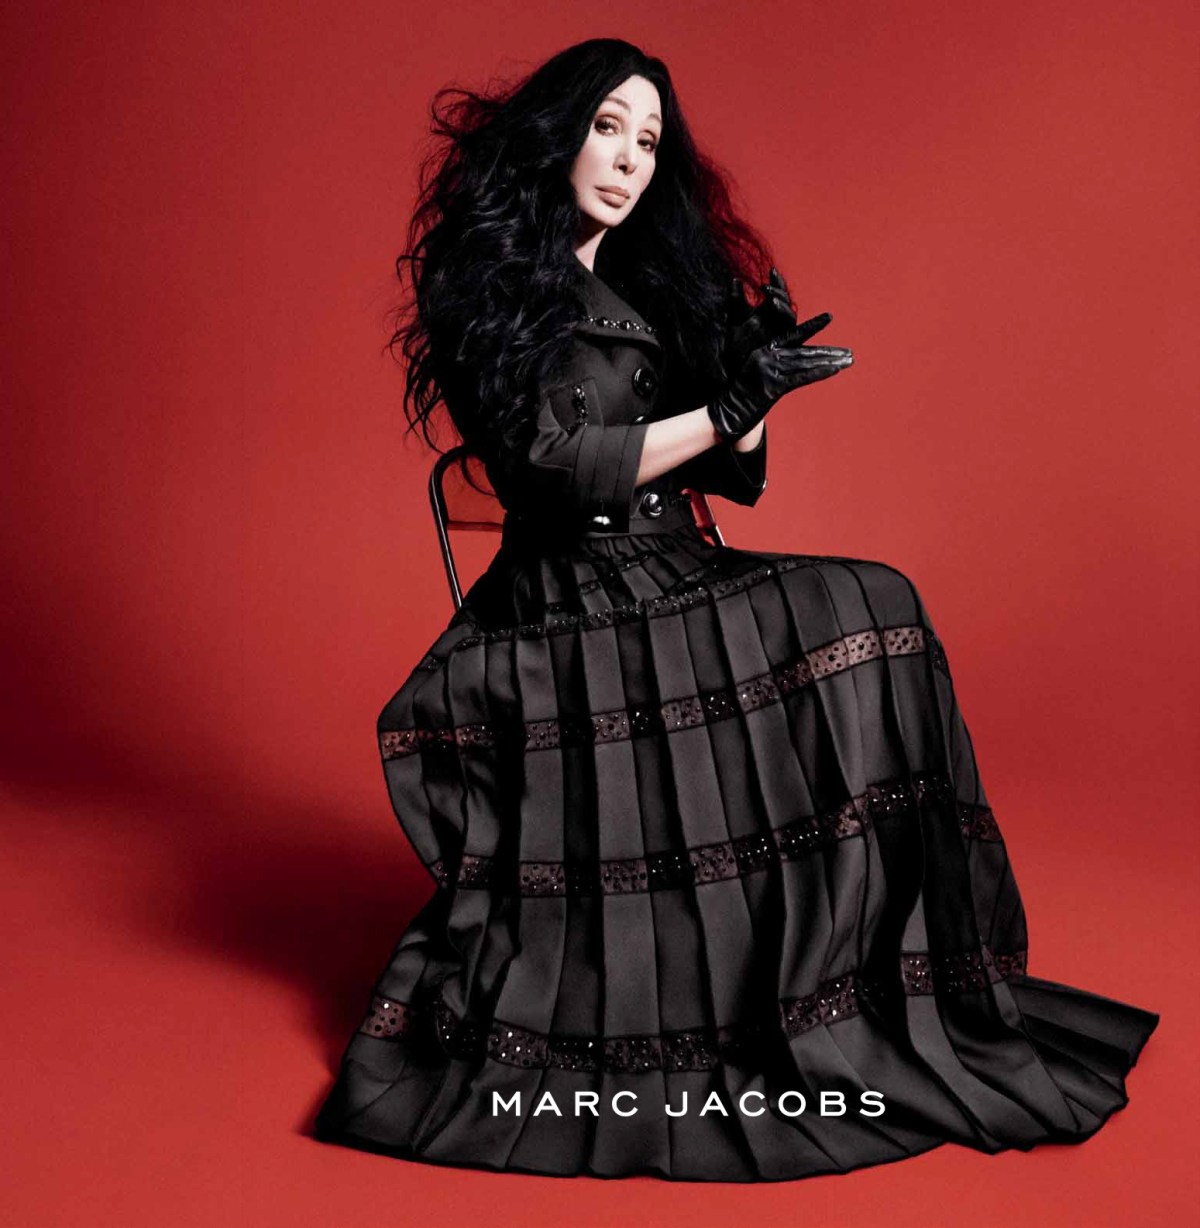 marc jacobs fall 2015 ad cher photo